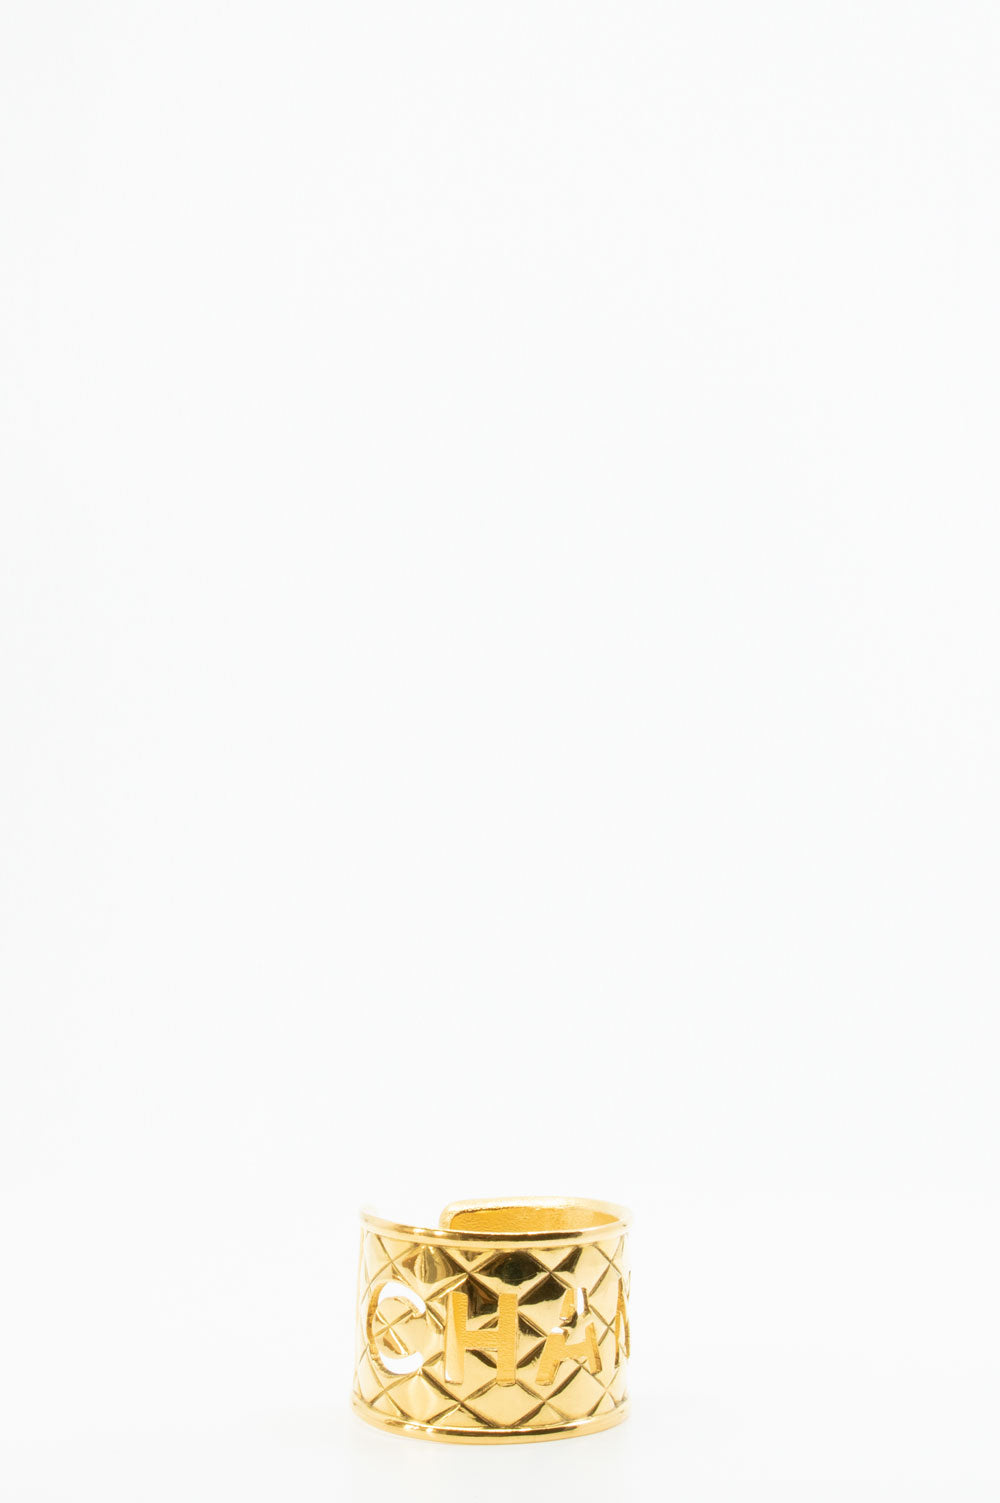 Chanel Vintage Cuff in gold.